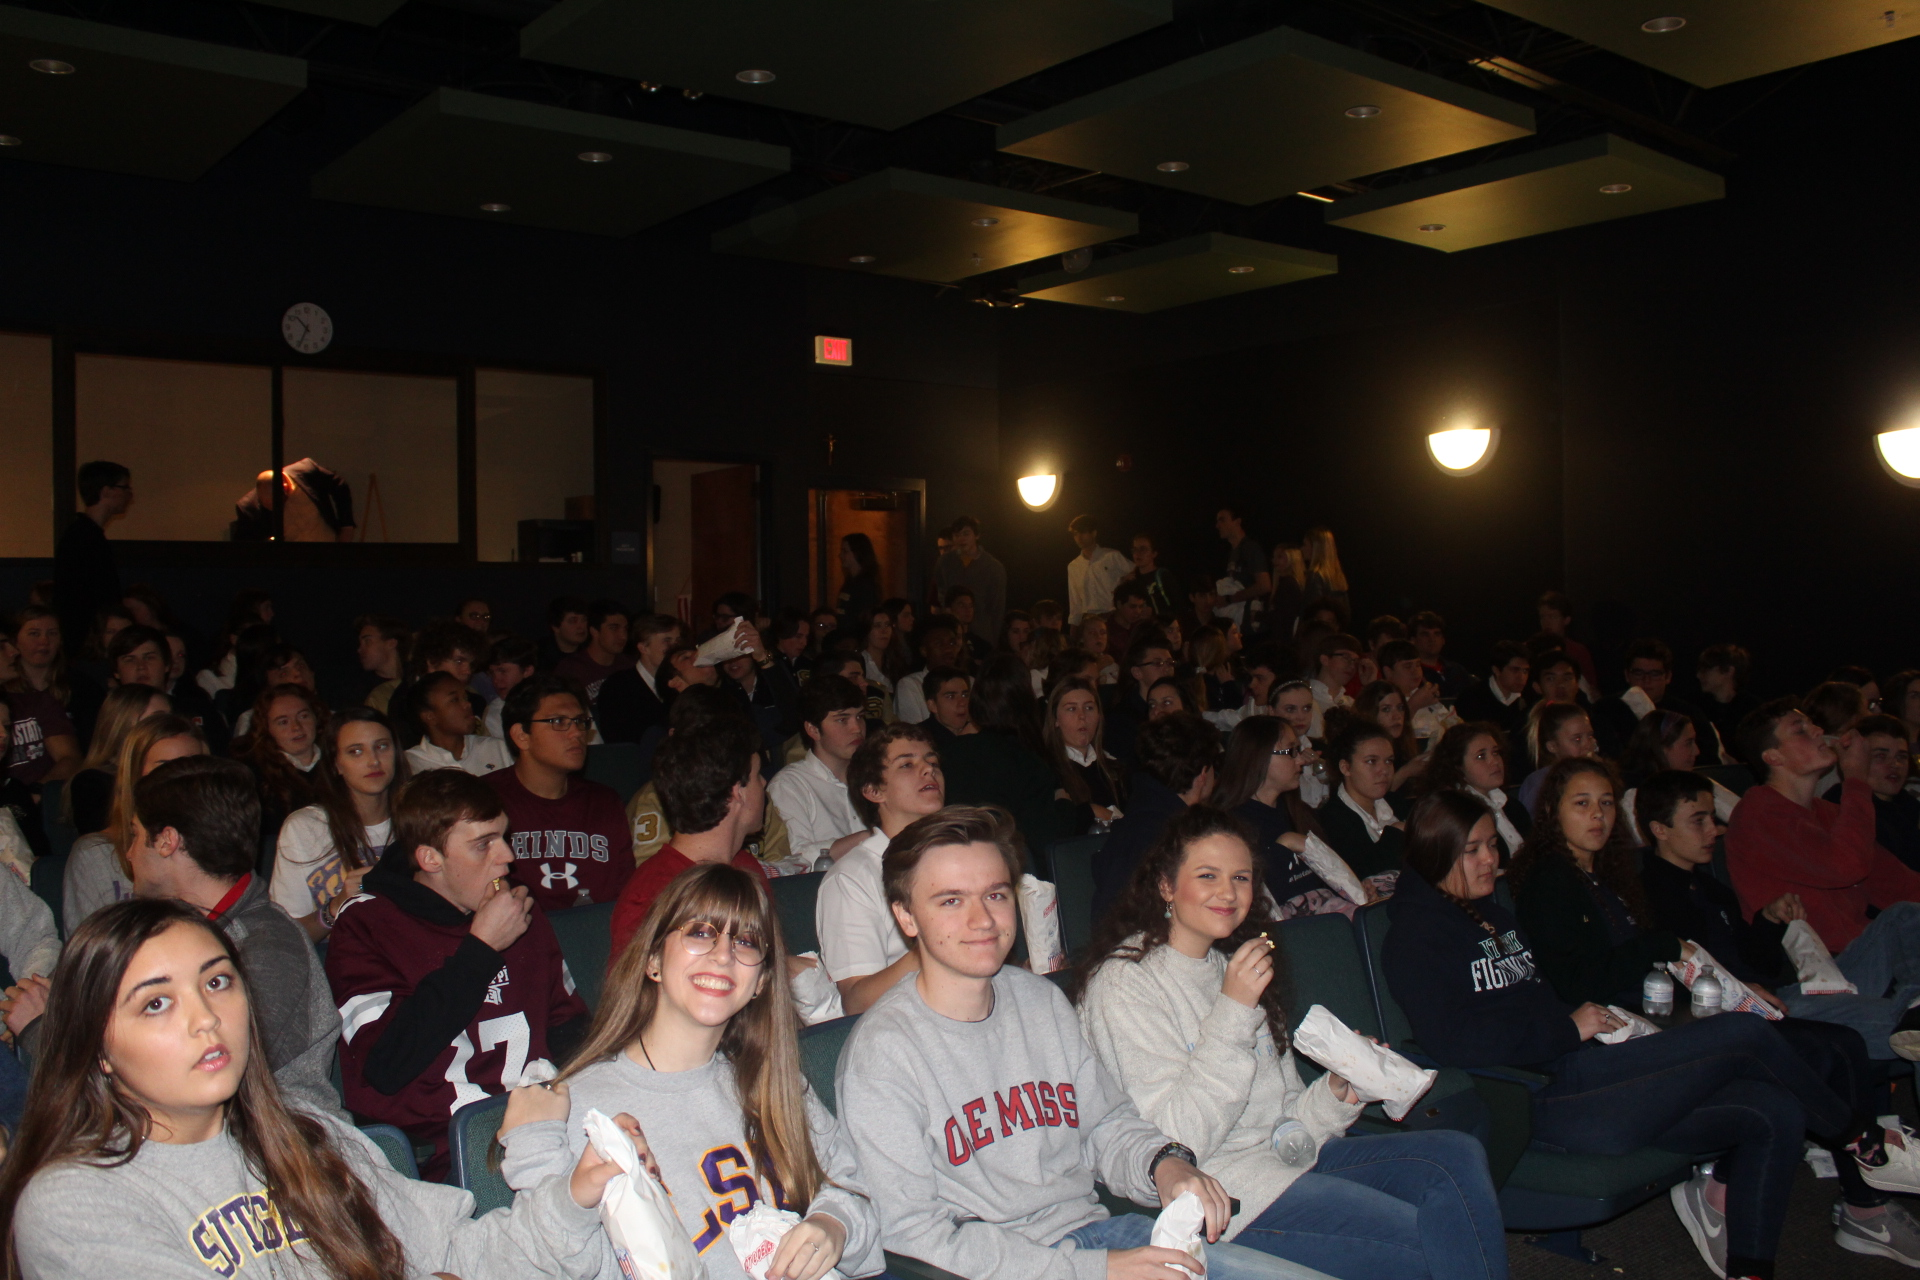 Students enjoy movie to celebrate Catholic Schools Week